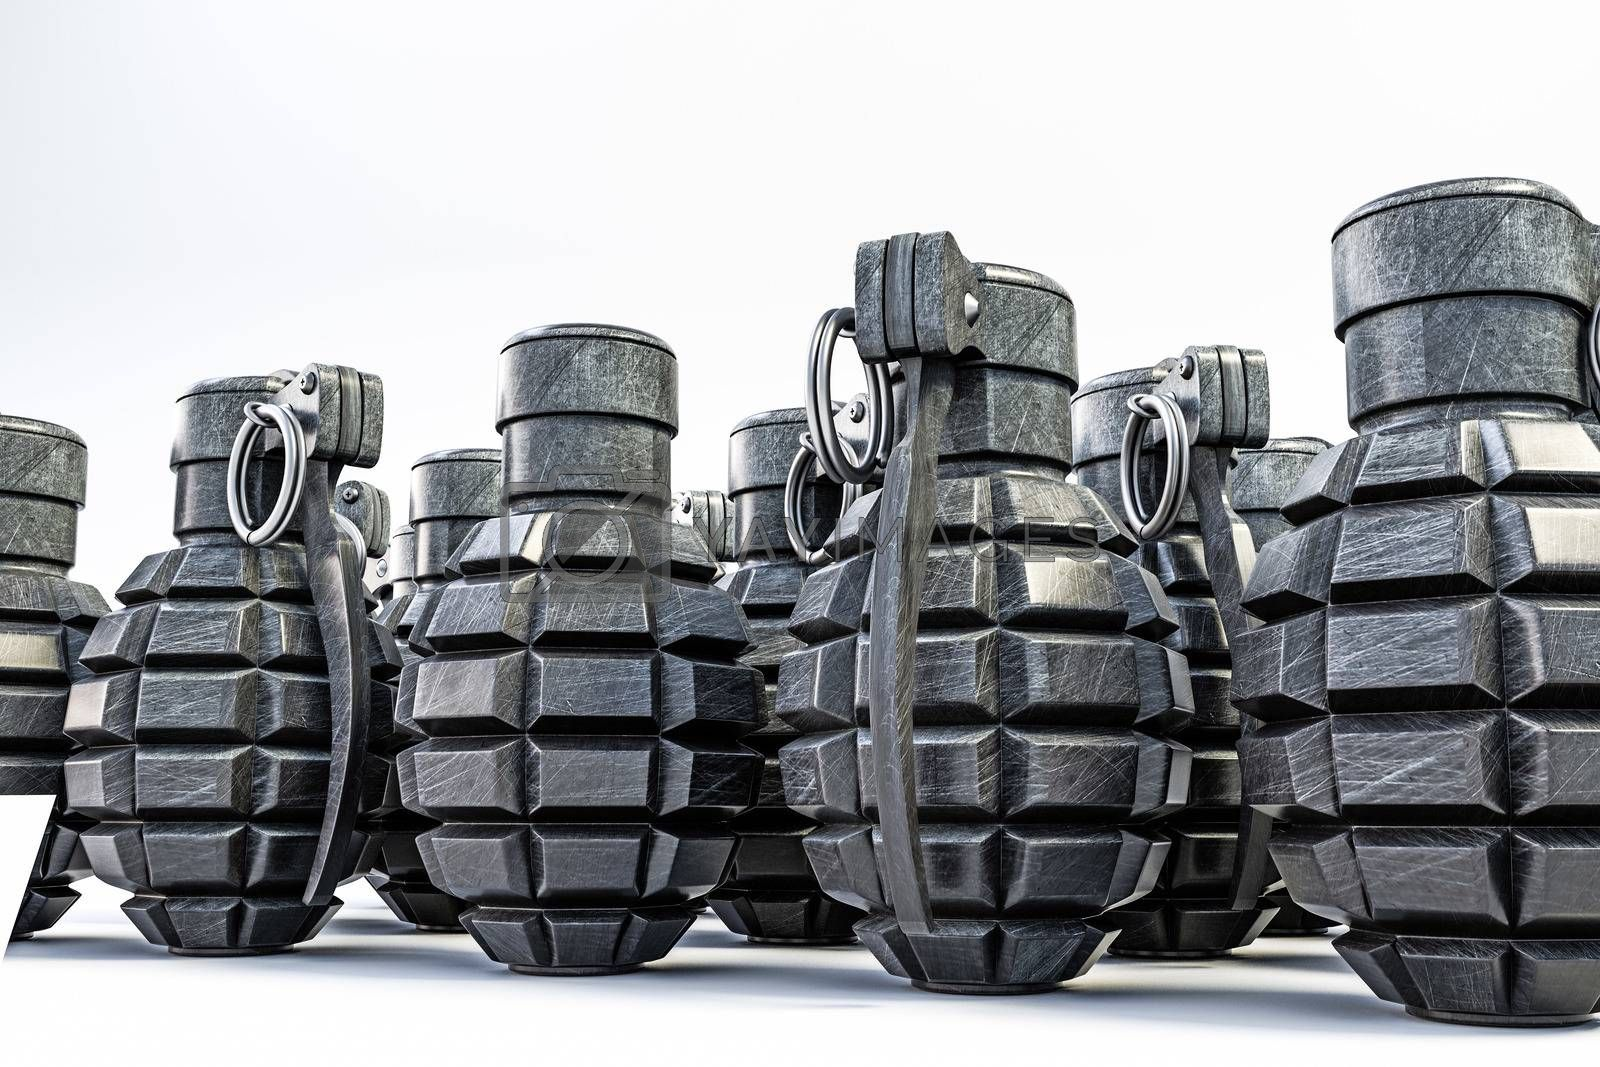 grenades isolated on white background 3d illustration